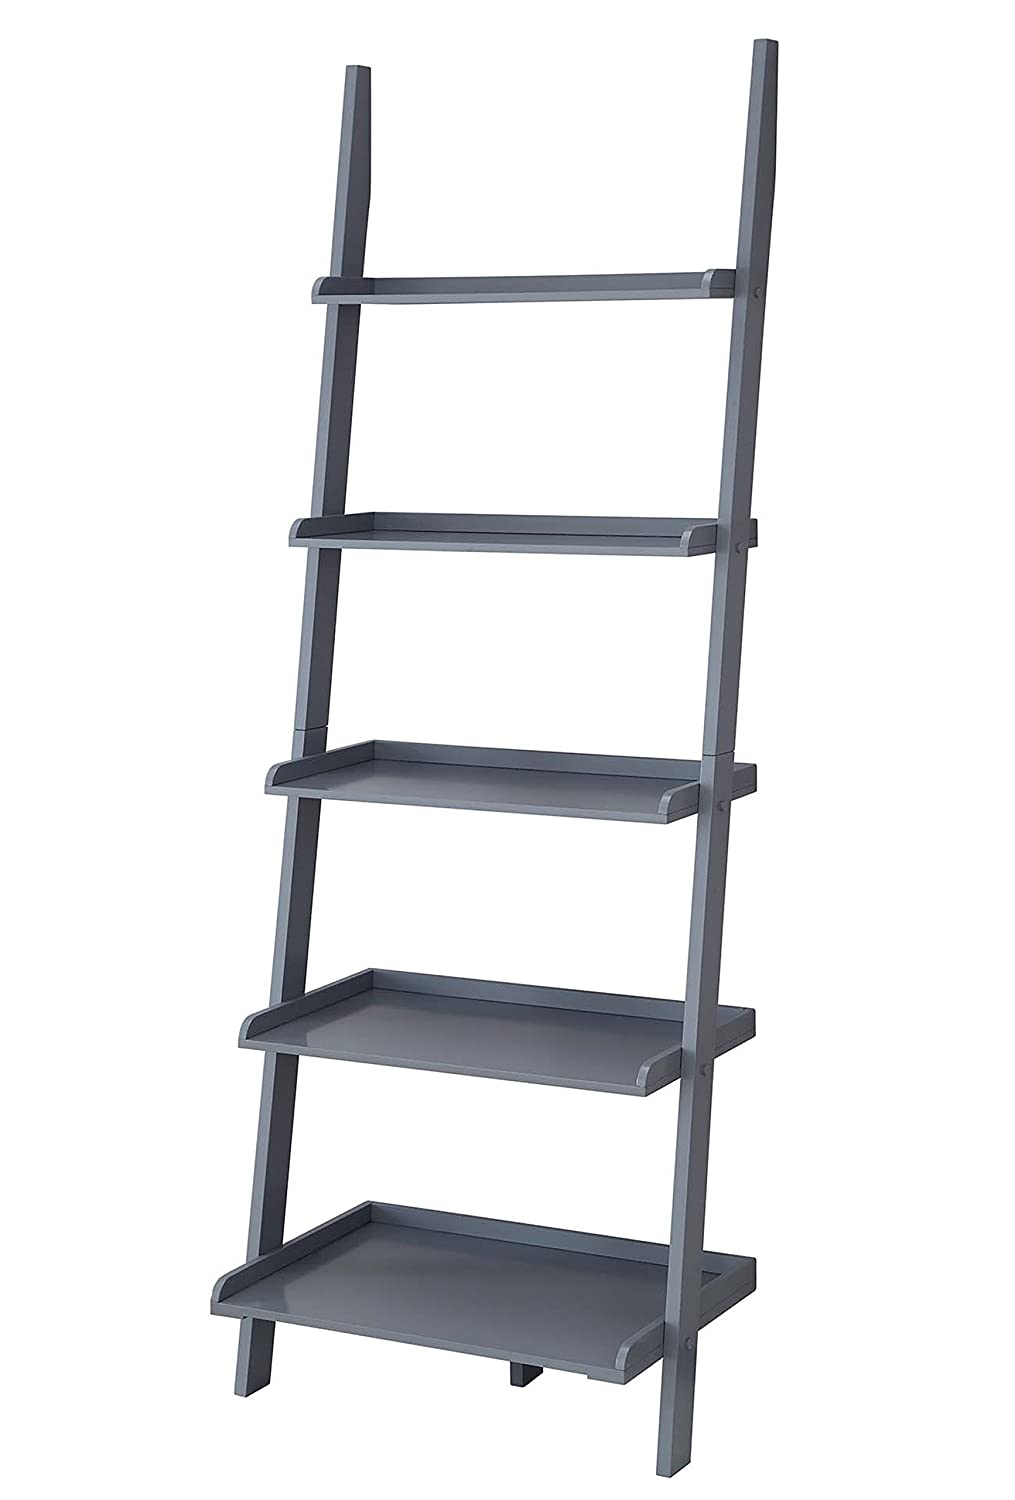 Convenience Concepts American Heritage Bookshelf Ladder, Black 8043391-BL